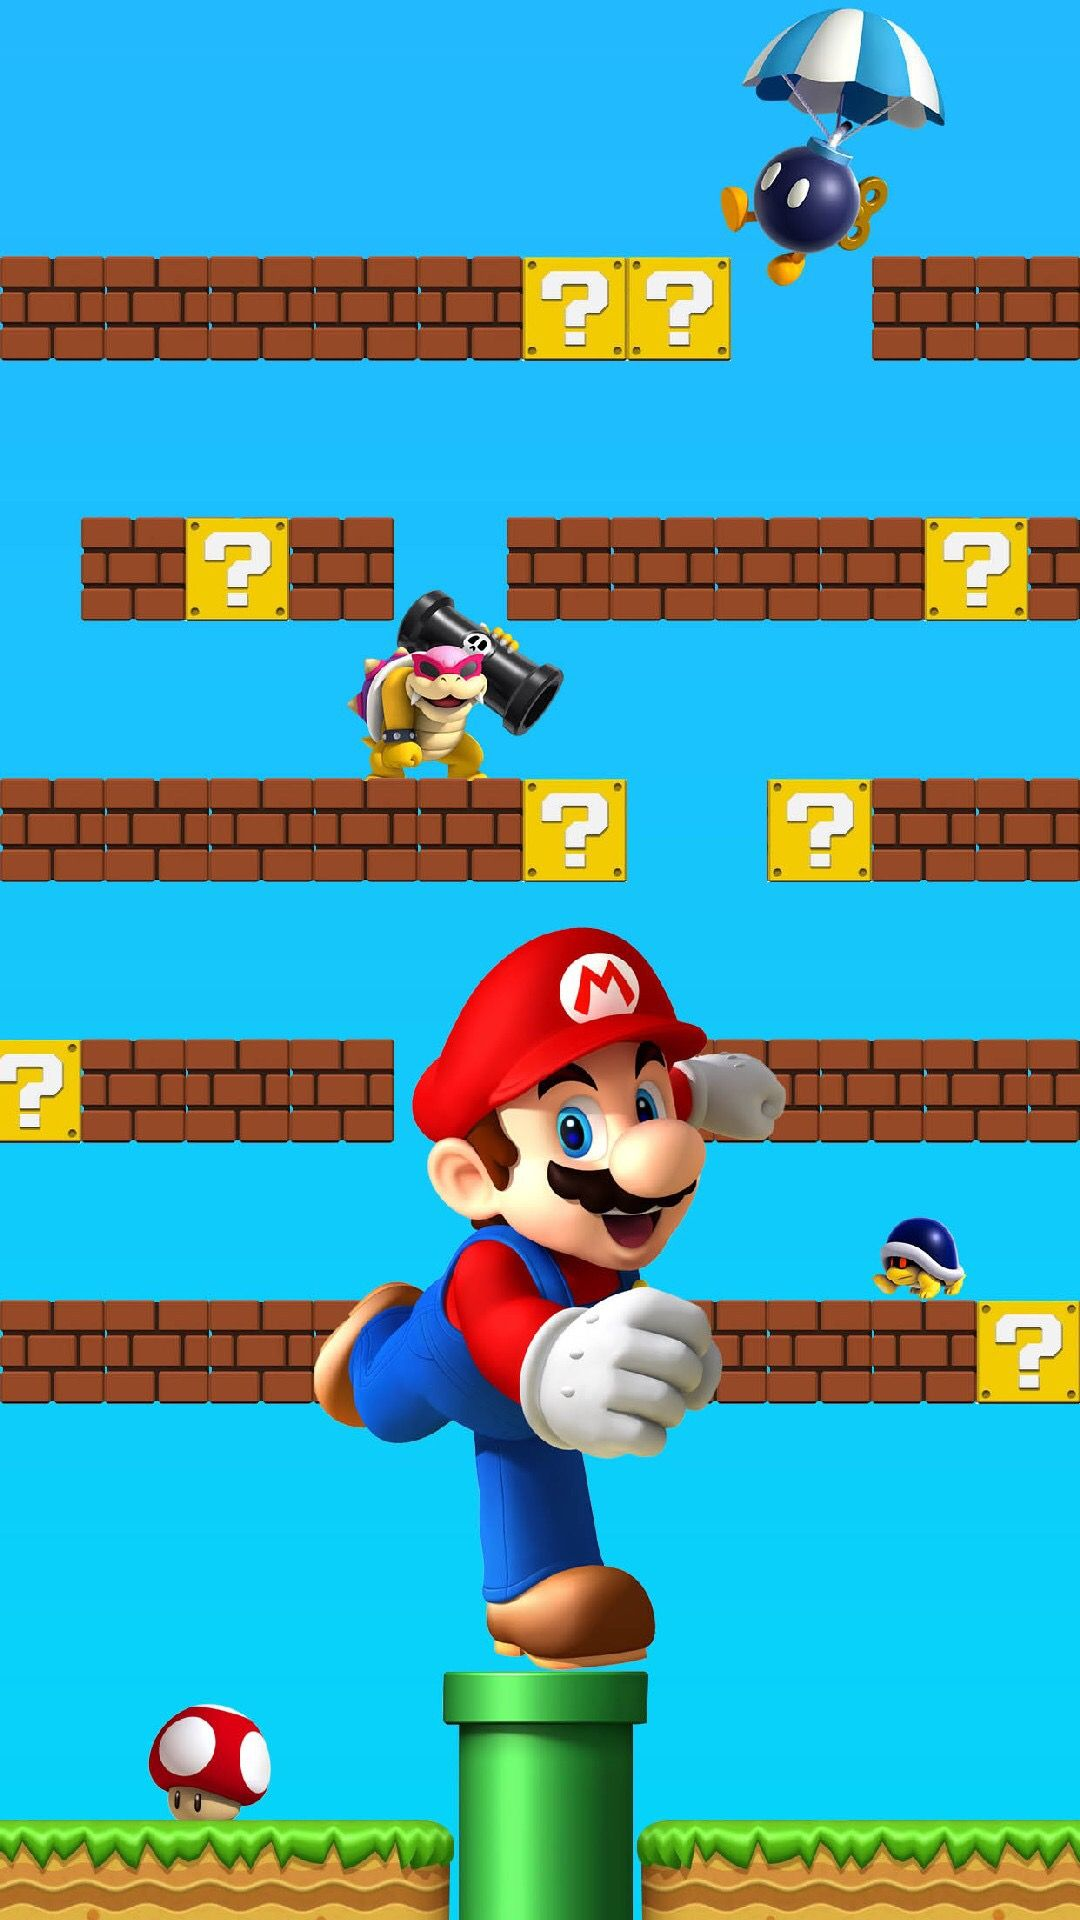 Home supermario games supermario wallpapers - Shelves Super Mario Colorful Awesome Omputer Graphics